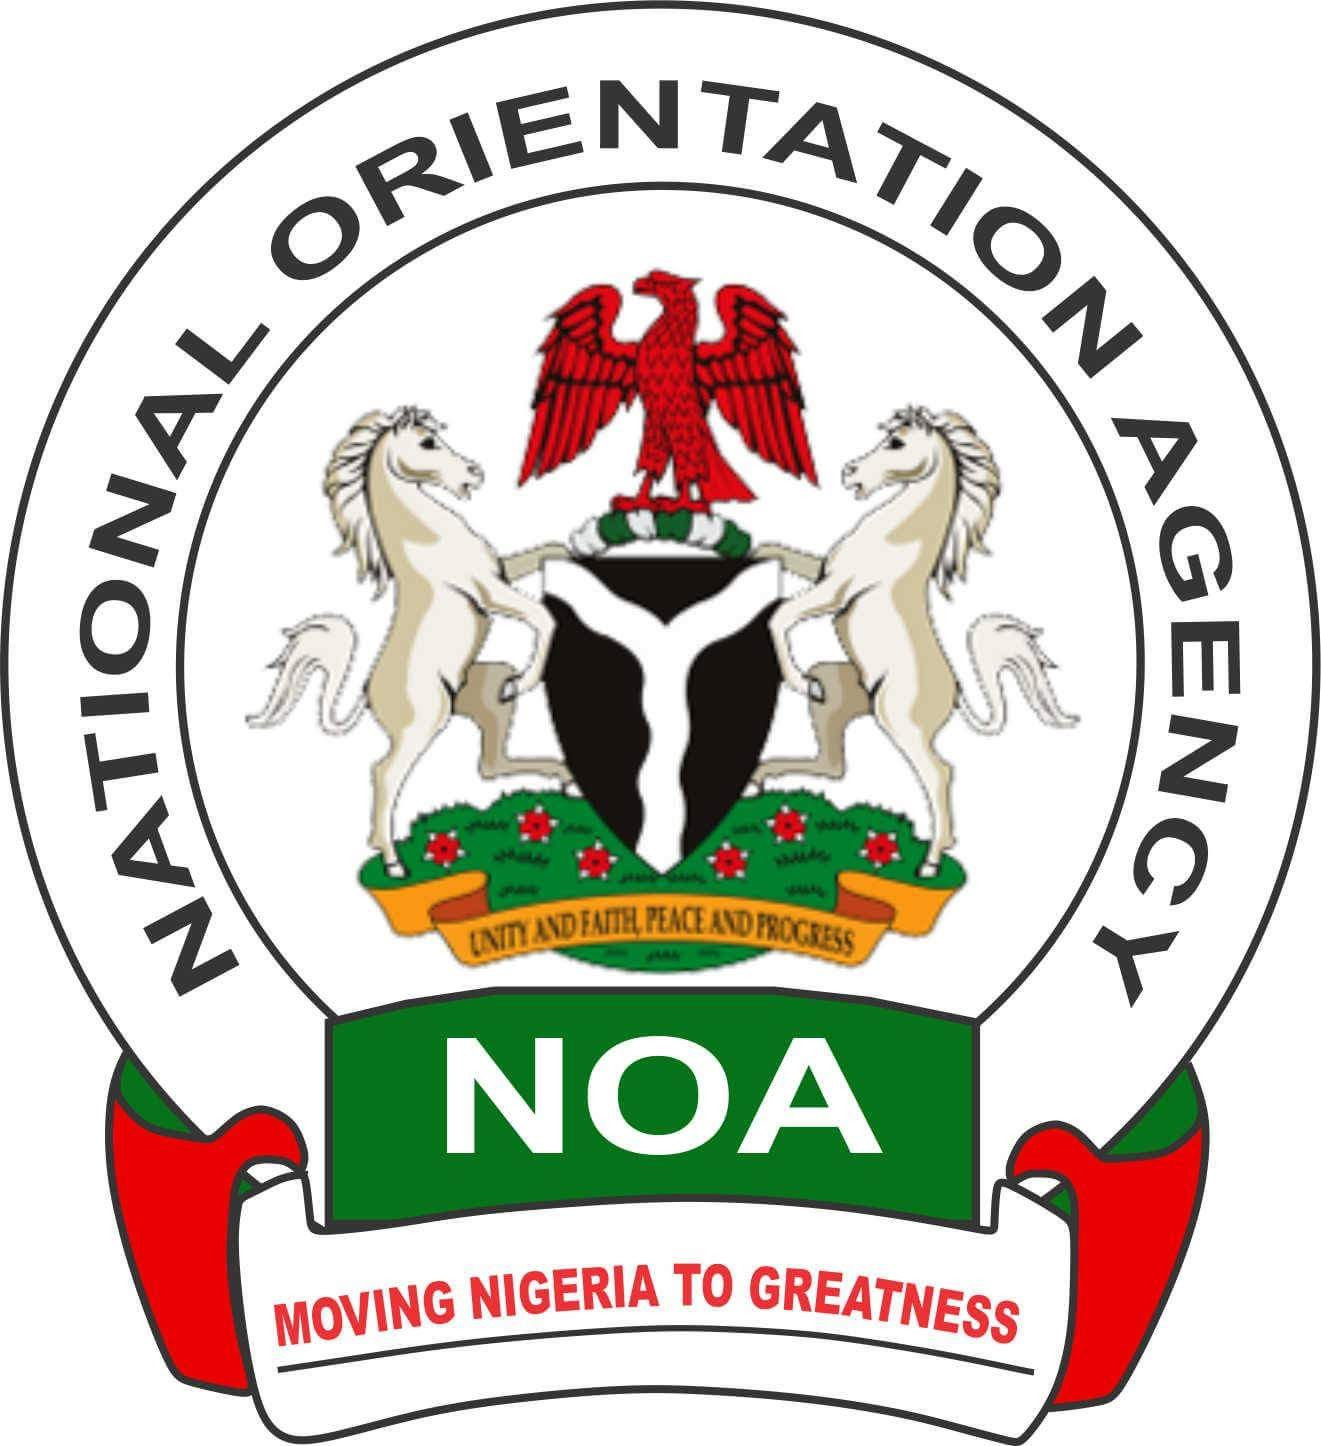 Looting will have negative effects on economy -  National Orientation Agency